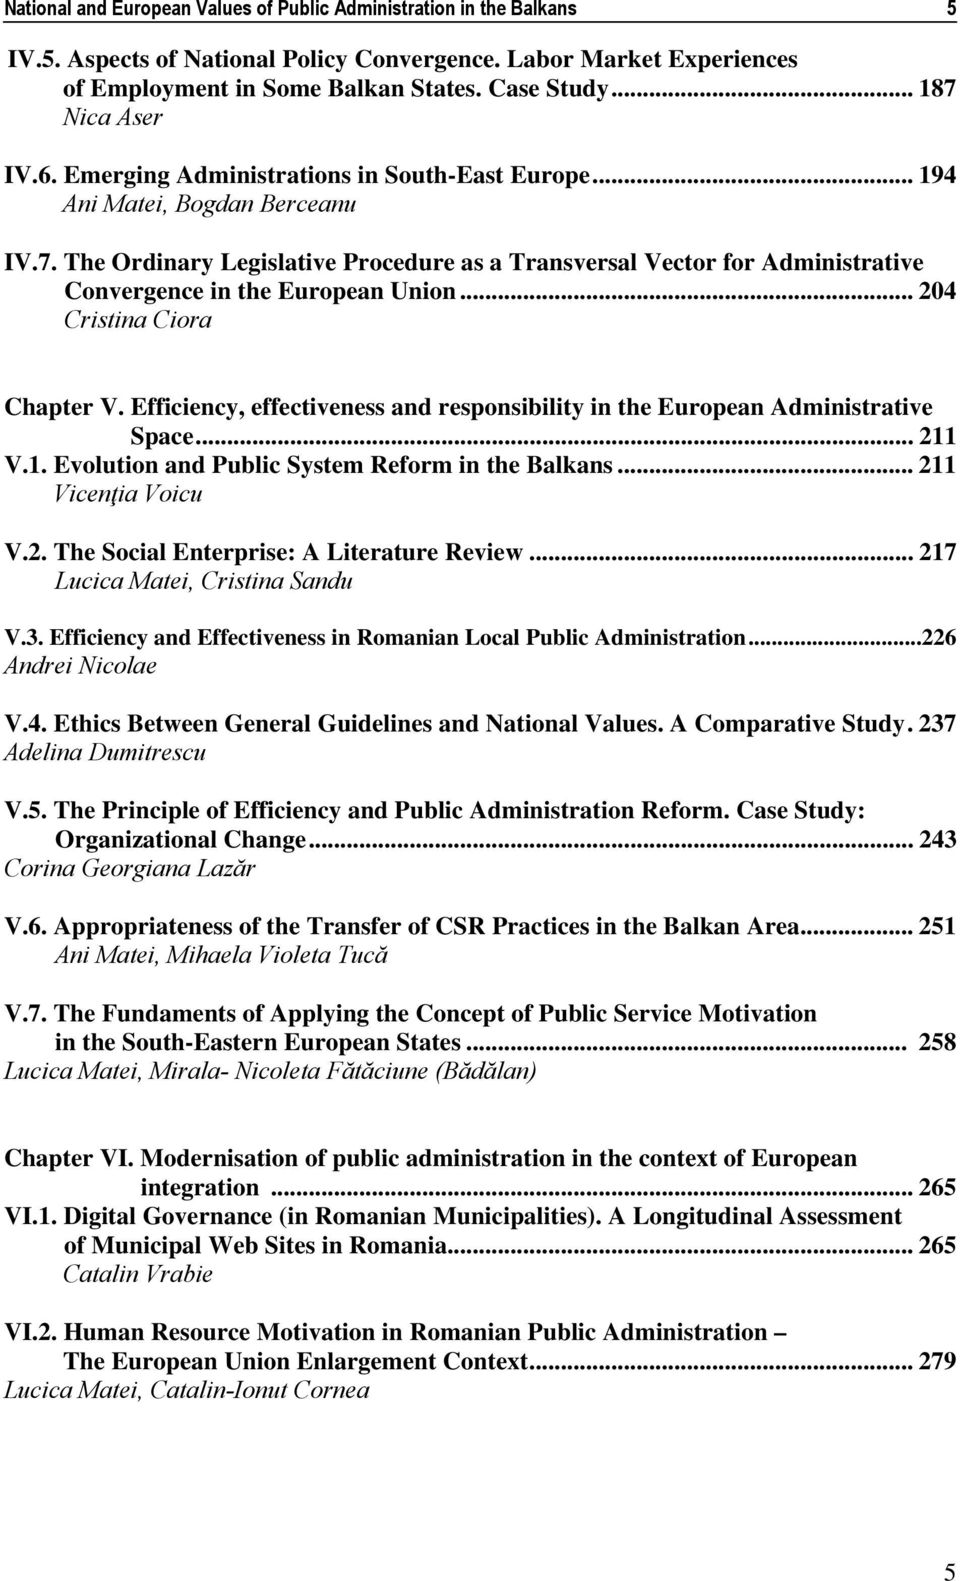 .. 204 Cristina Ciora Chapter V. Efficiency, effectiveness and responsibility in the European Administrative Space... 211 V.1. Evolution and Public System Reform in the Balkans... 211 Vicenţia Voicu V.